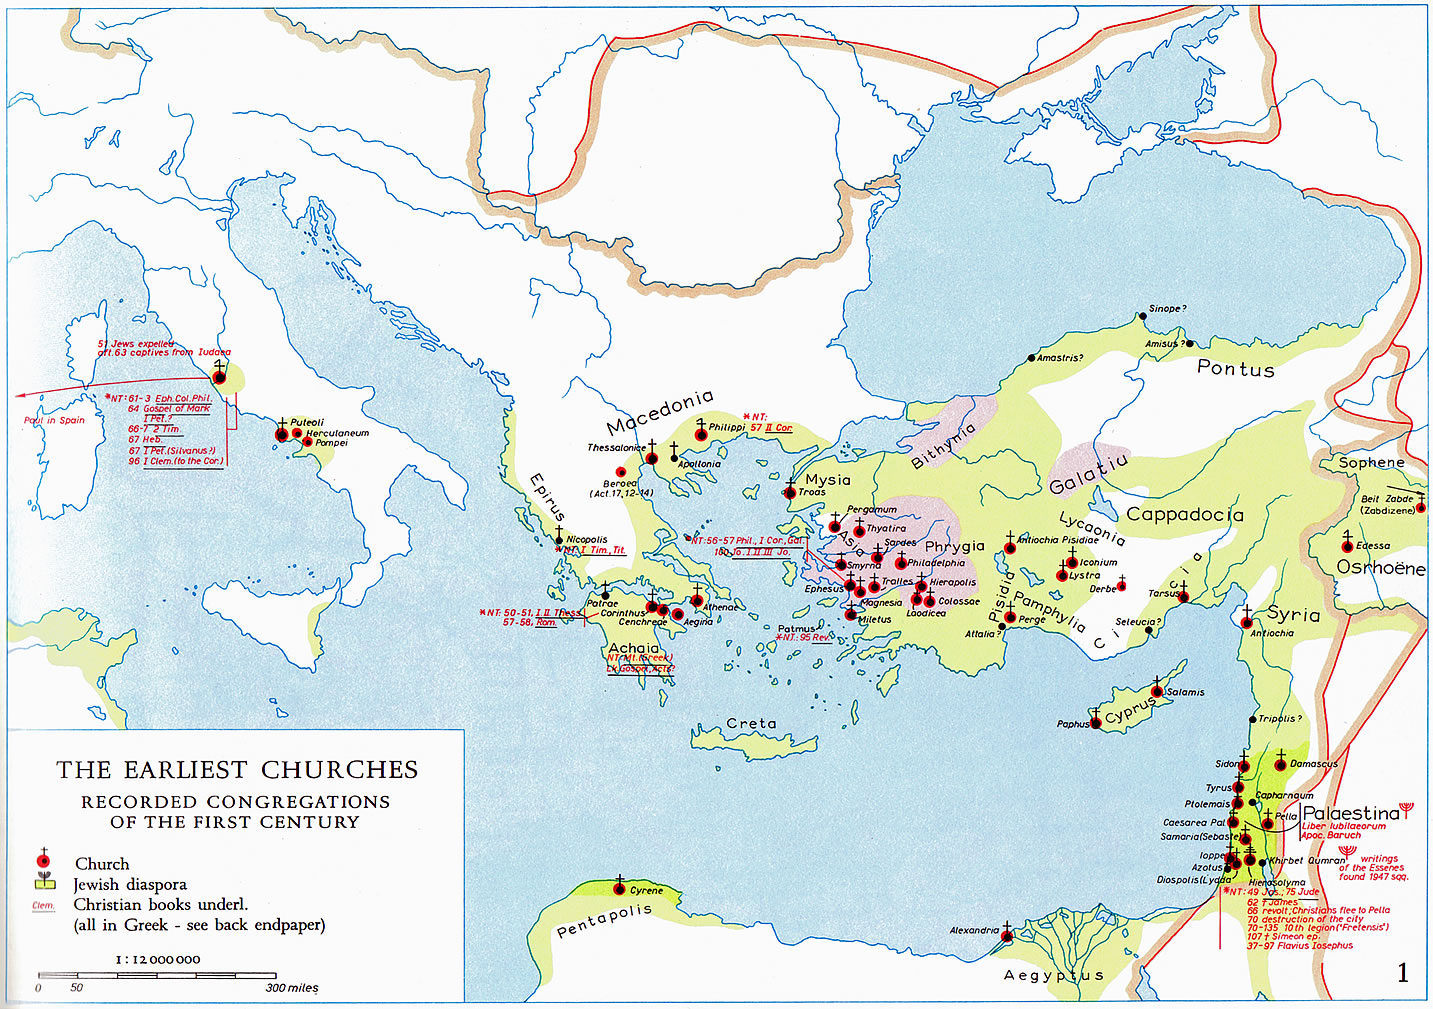 The earliest churches (recorded congregations of the first century)